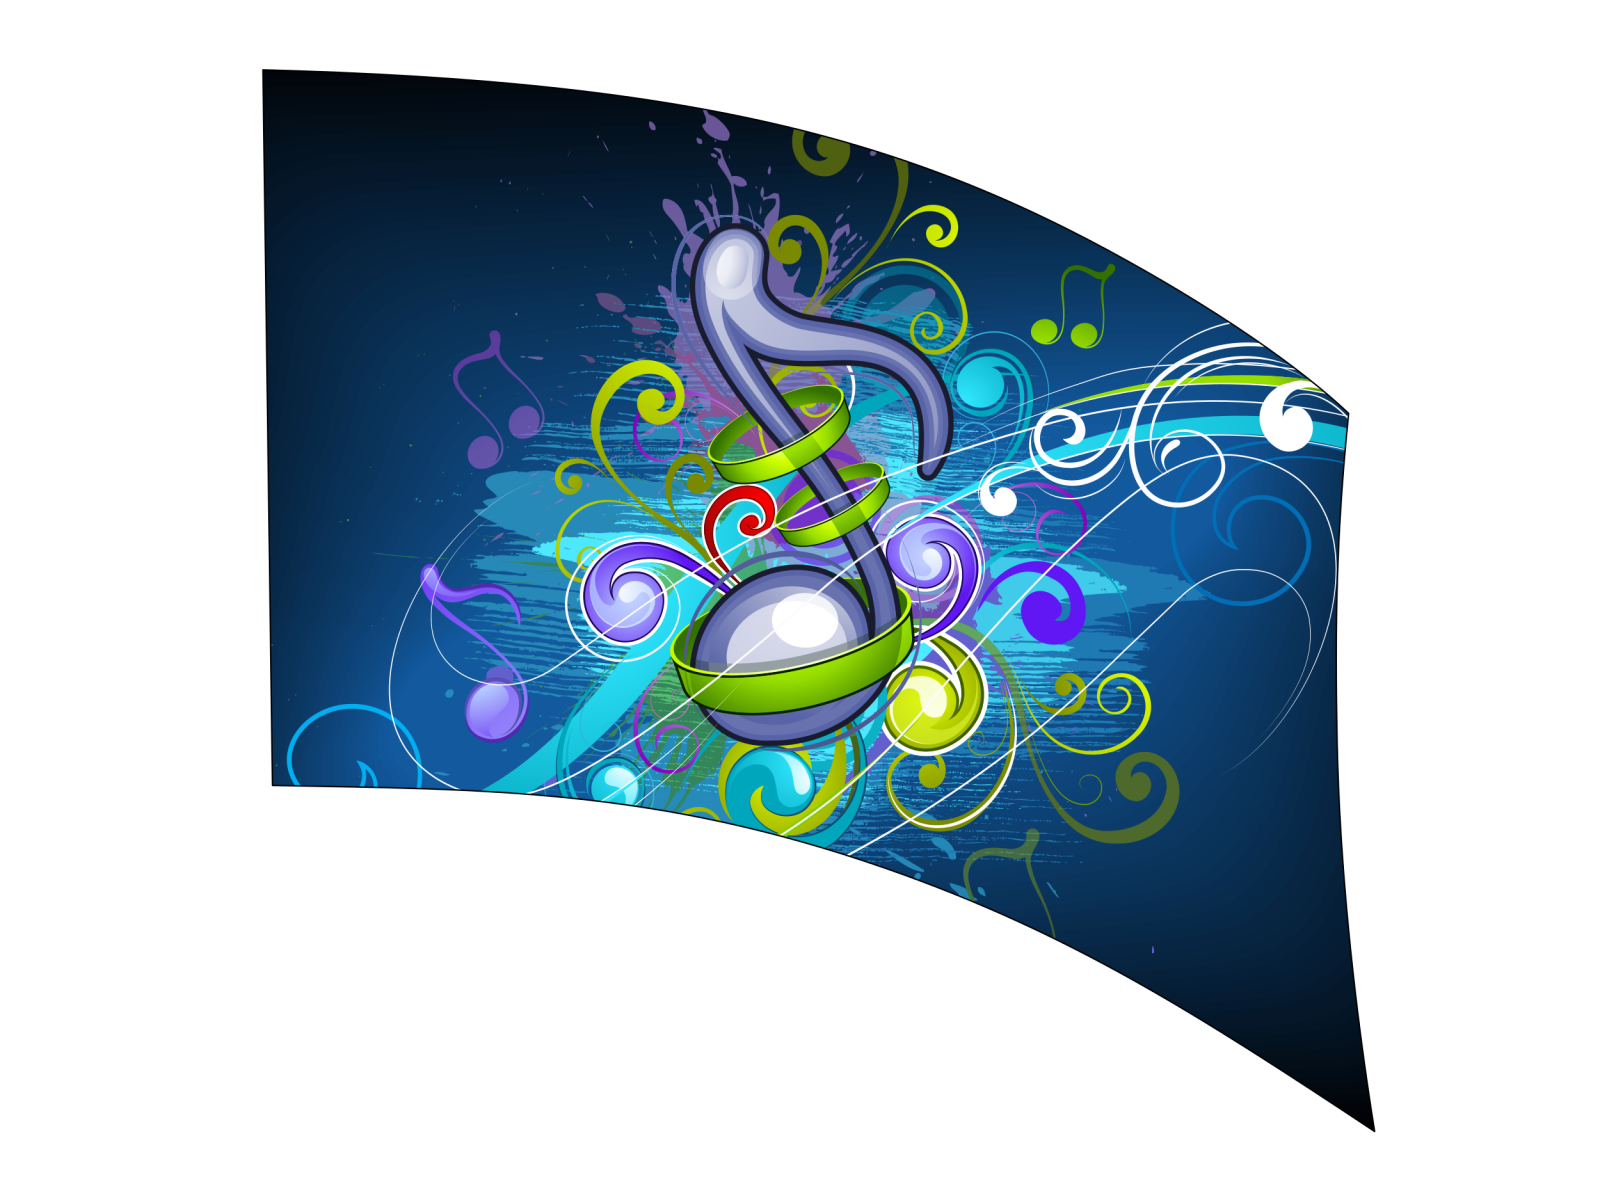 060406s - 36x52 Standard Music Notes 3